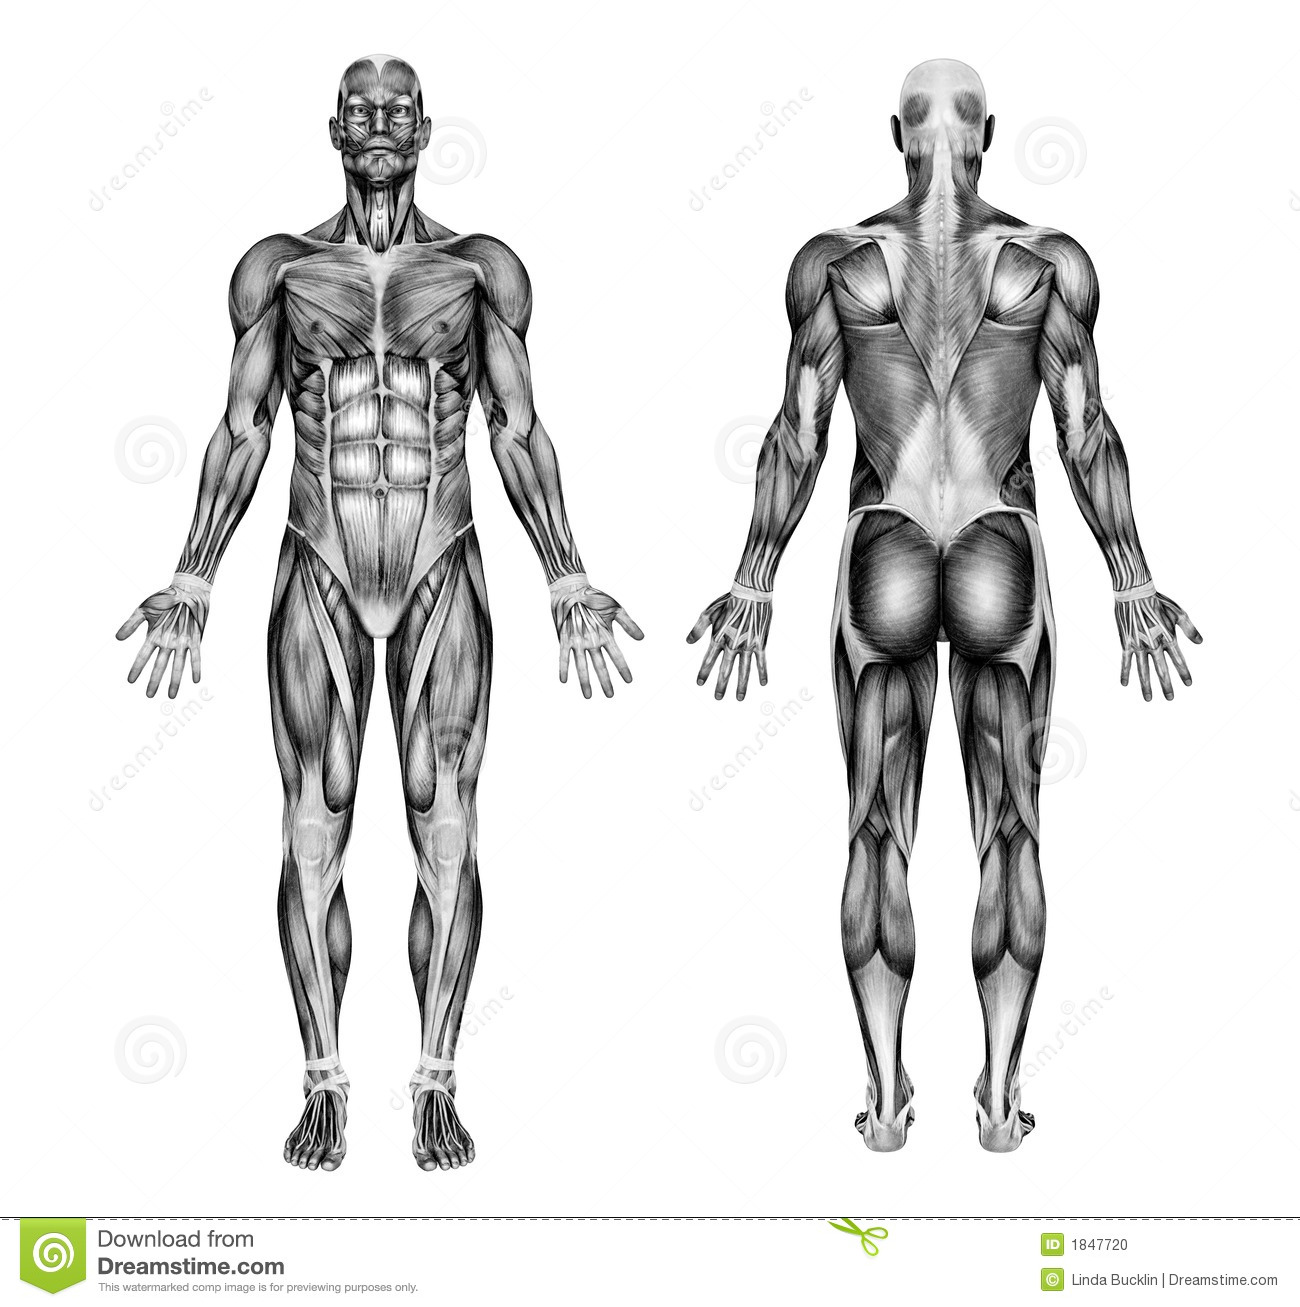 muscle anatomy drawing image collections - learn human anatomy image, Muscles